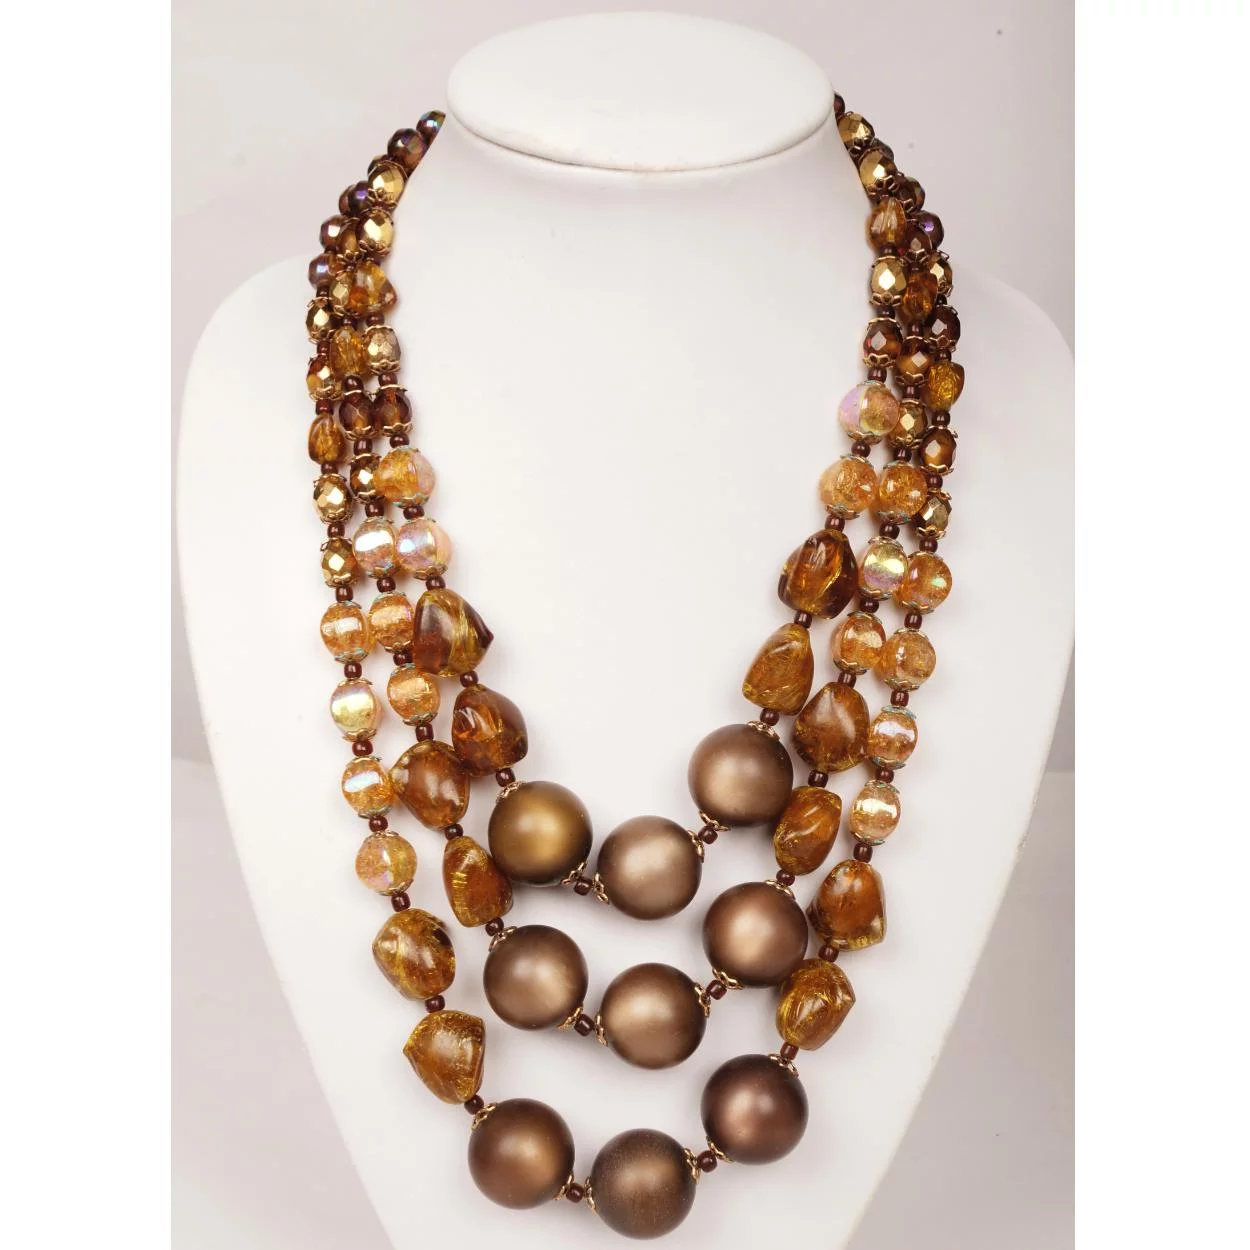 1950s Stunning Glass and Plastic Necklace